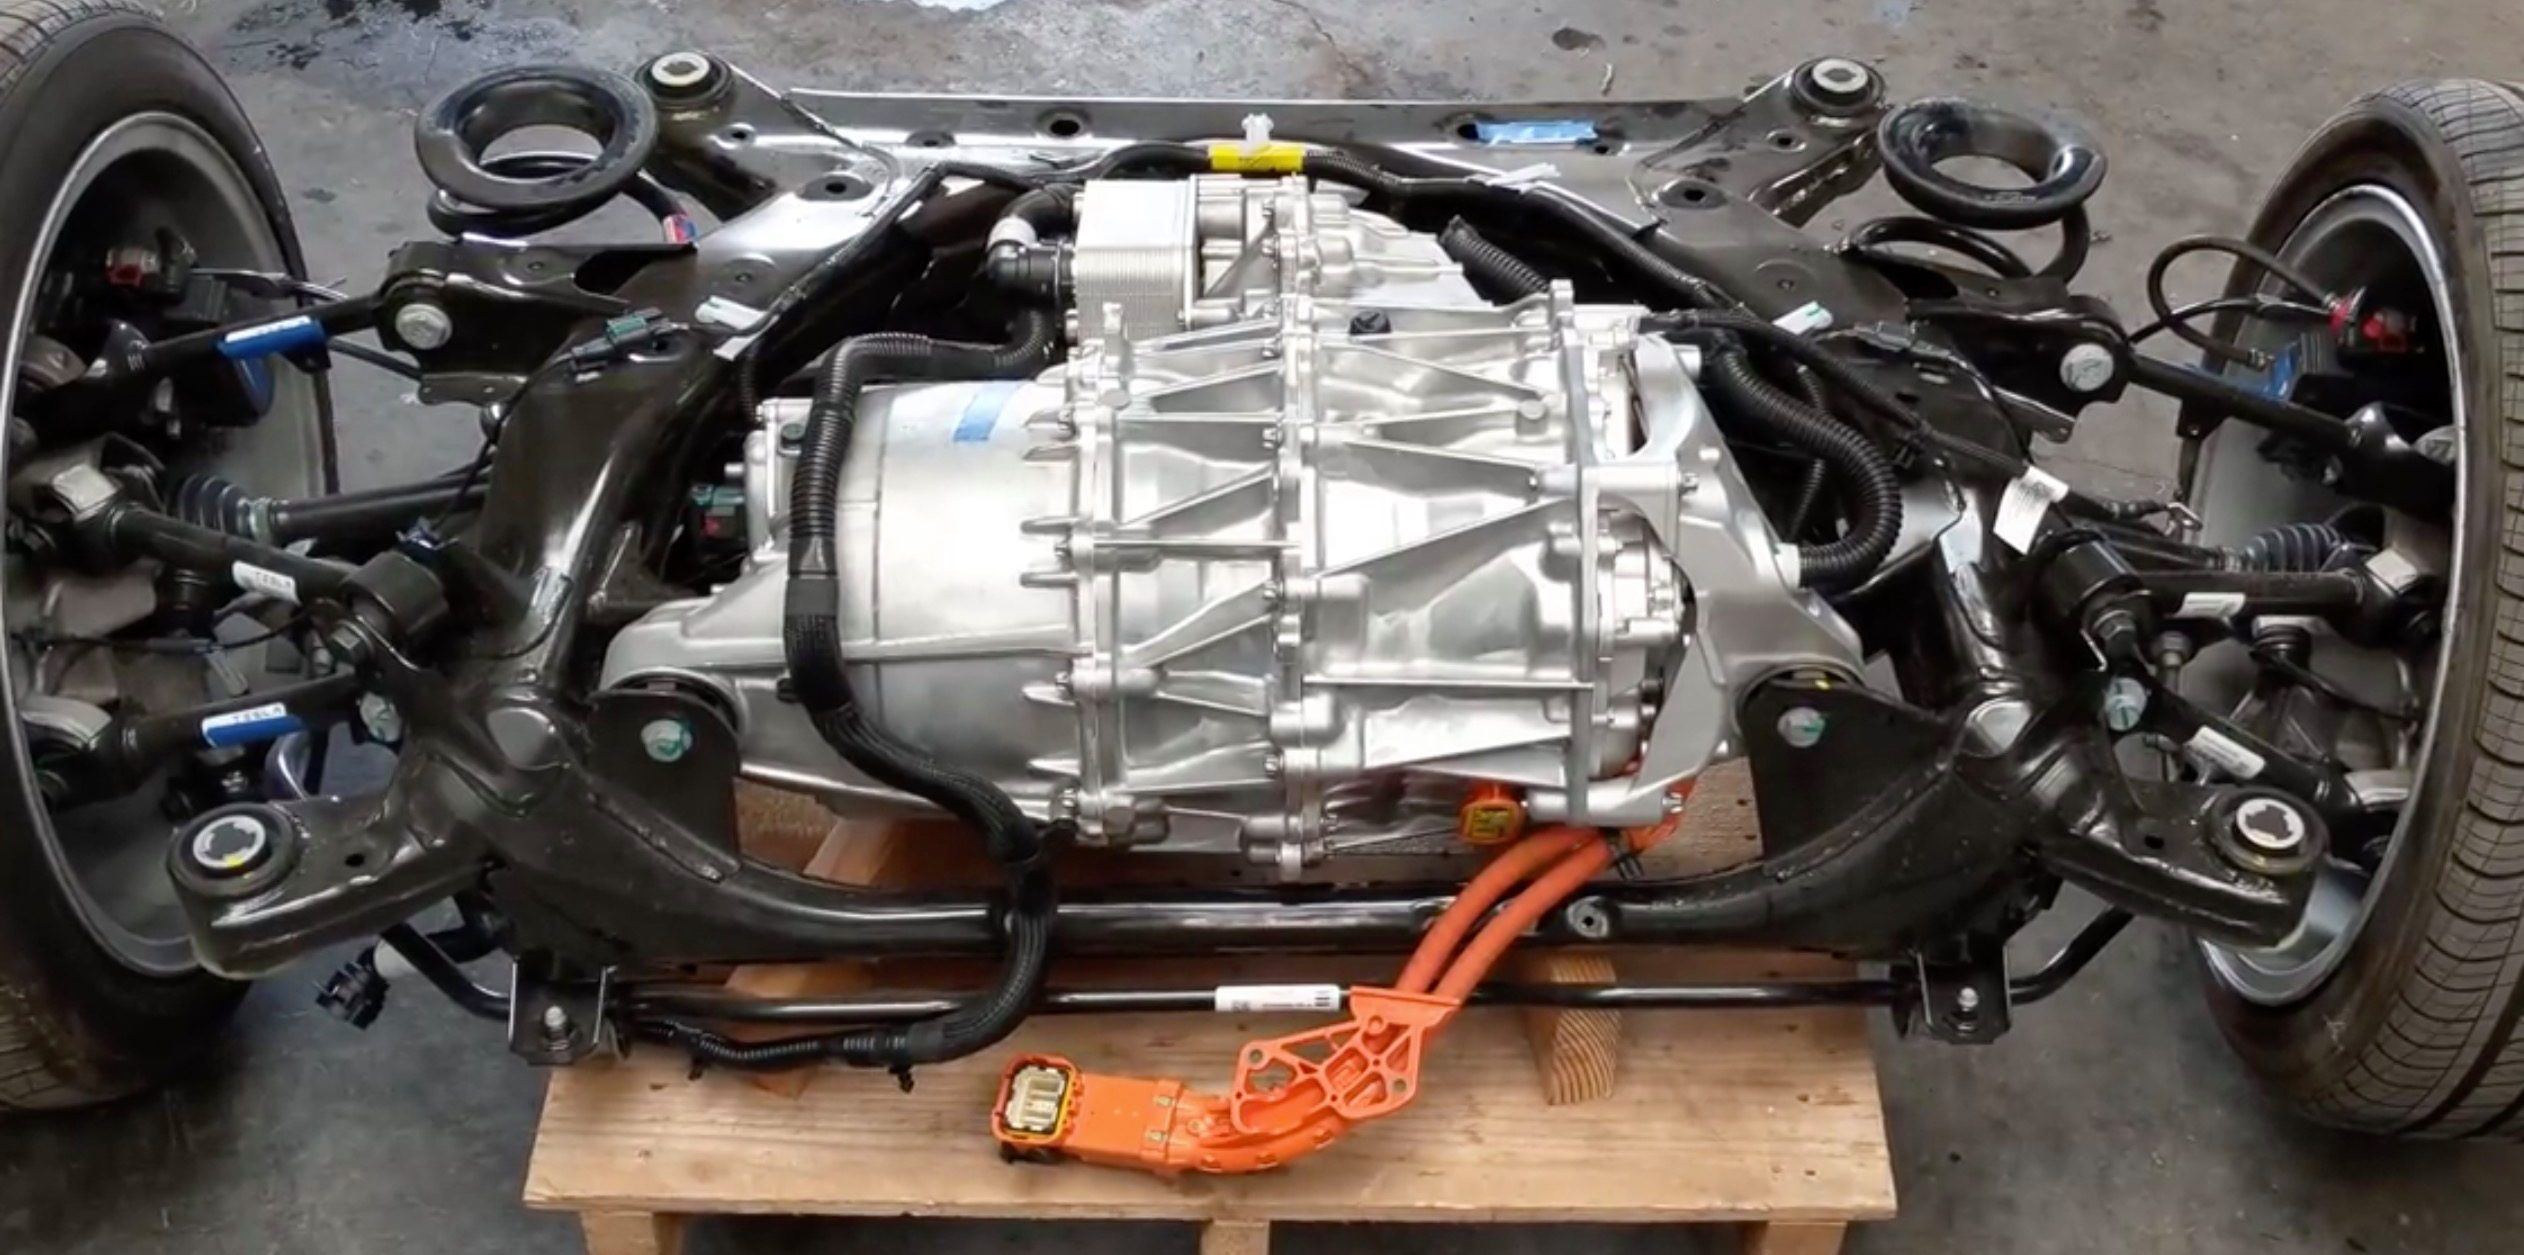 Tesla Model 3 teardown gives incredible look at the electric powertrain